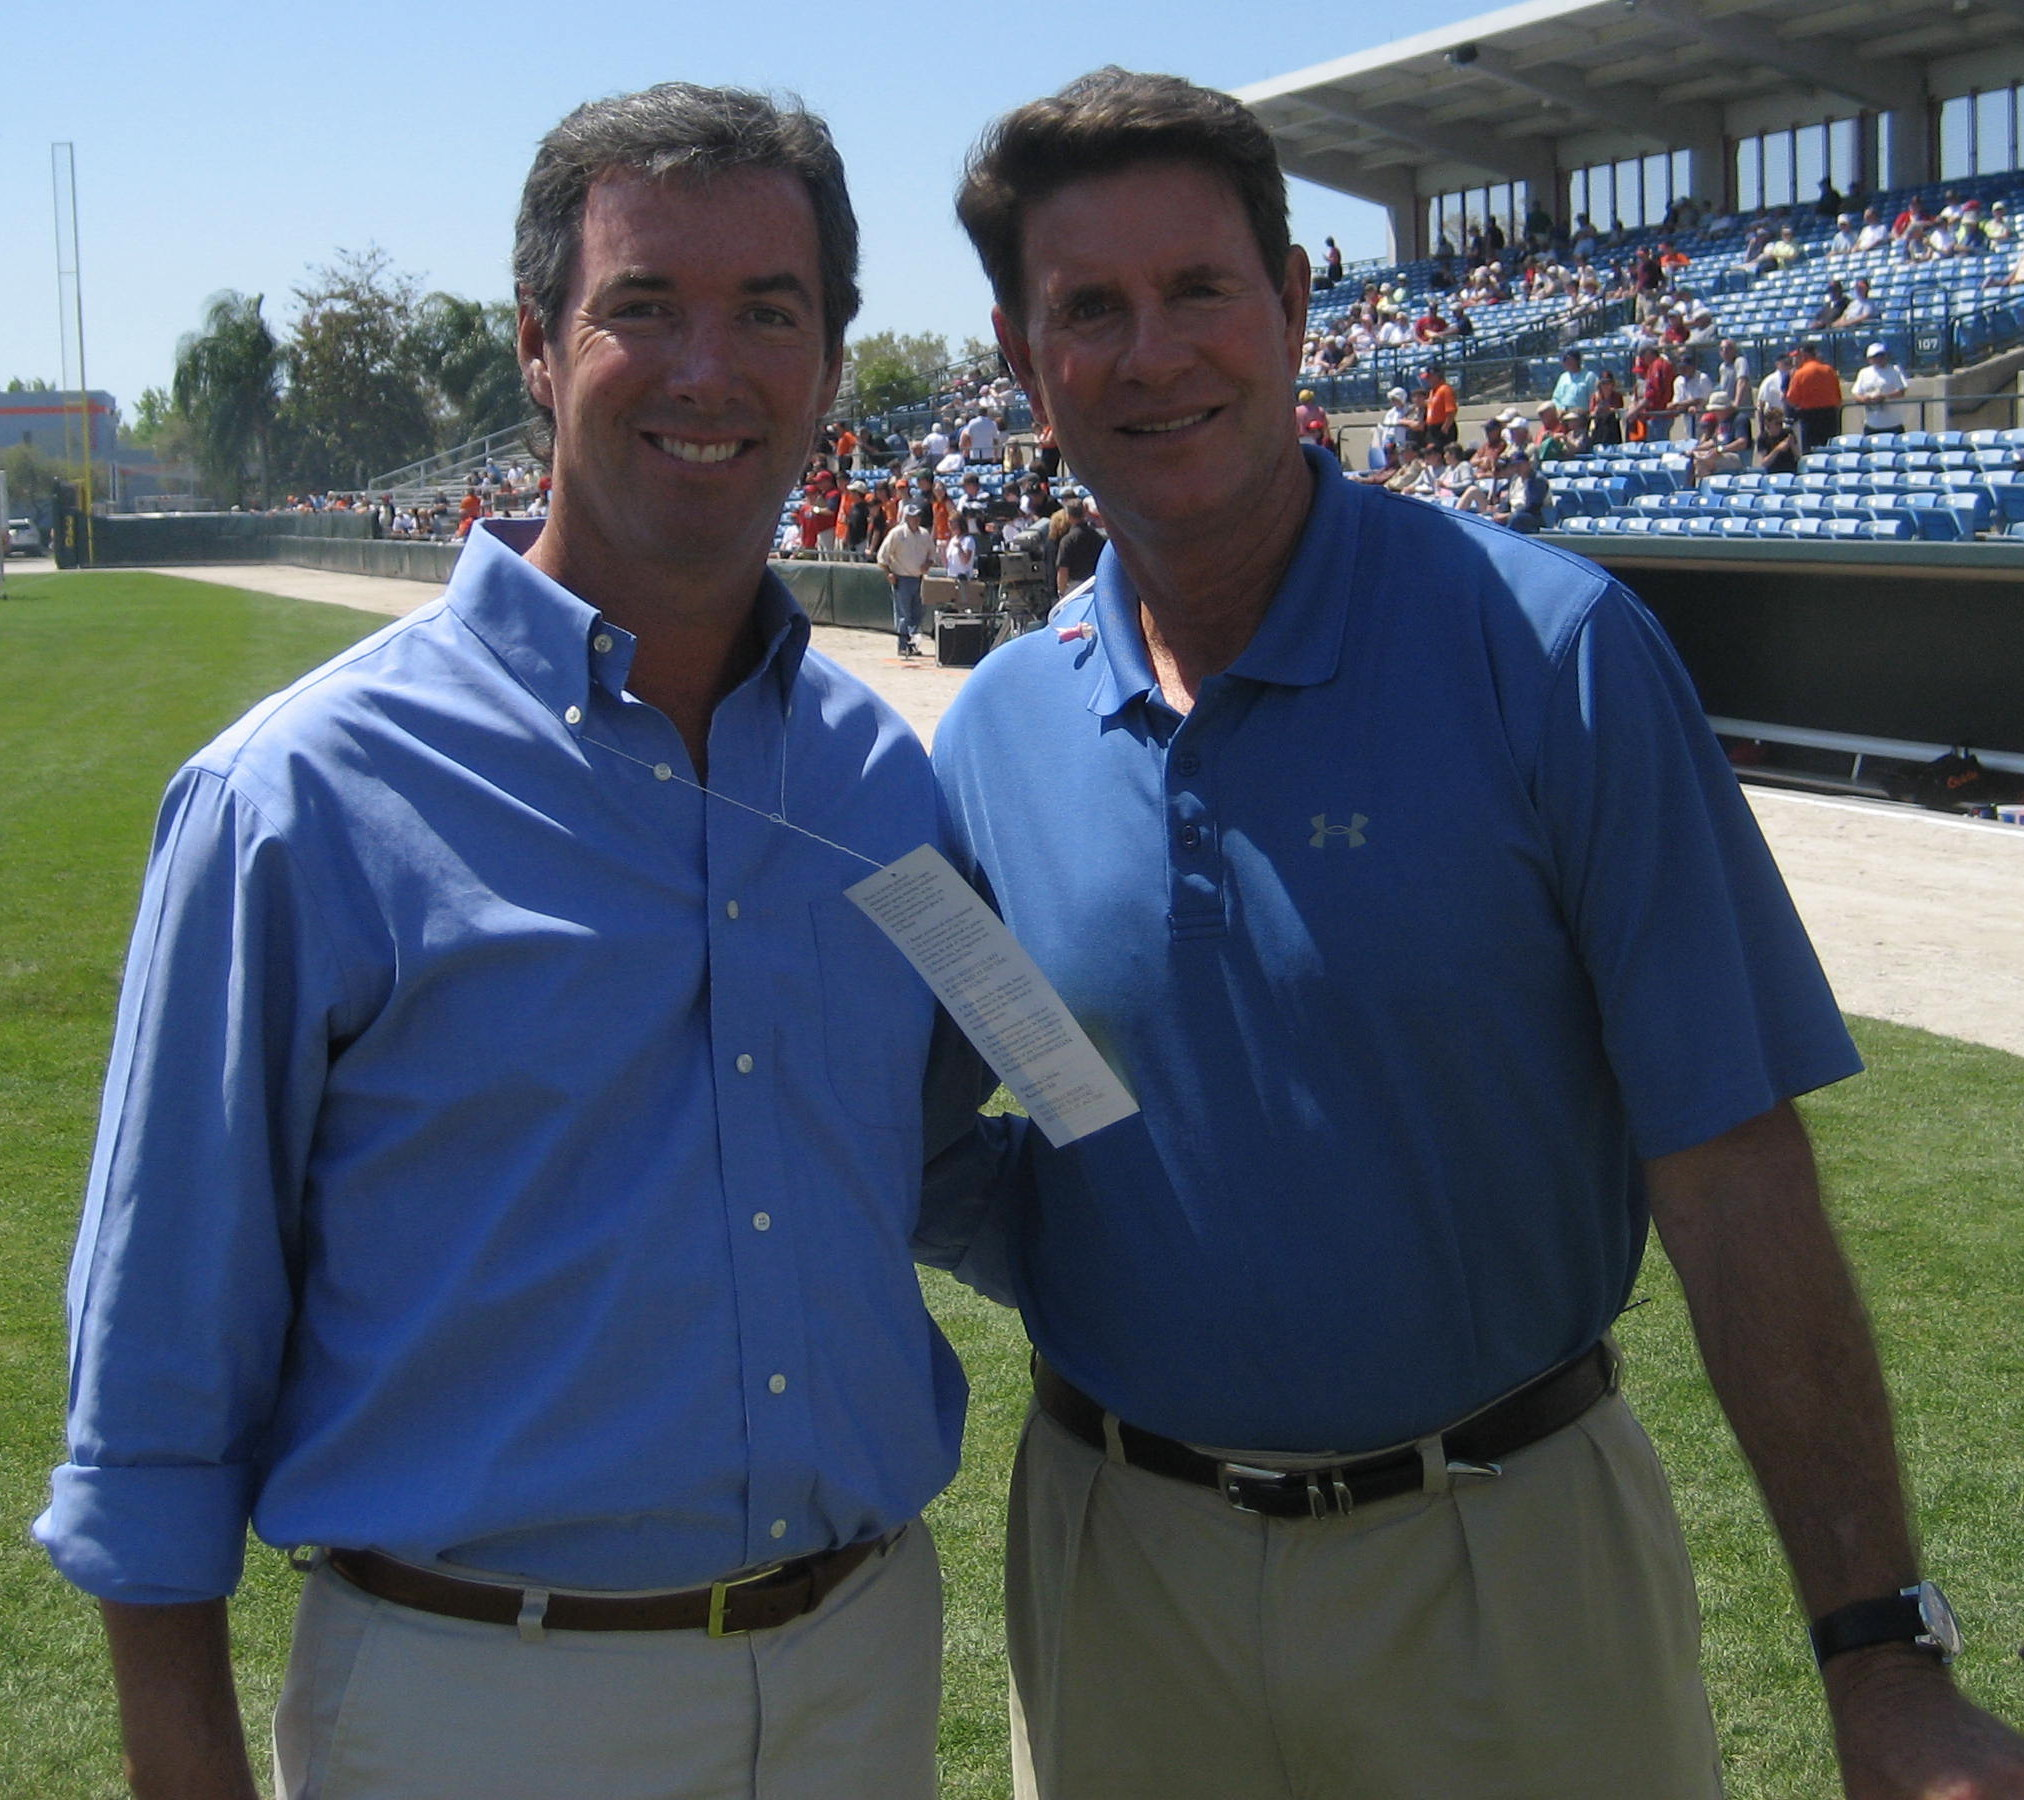 Ray Collins and Orioles Hall of Famer Jim Palmer.